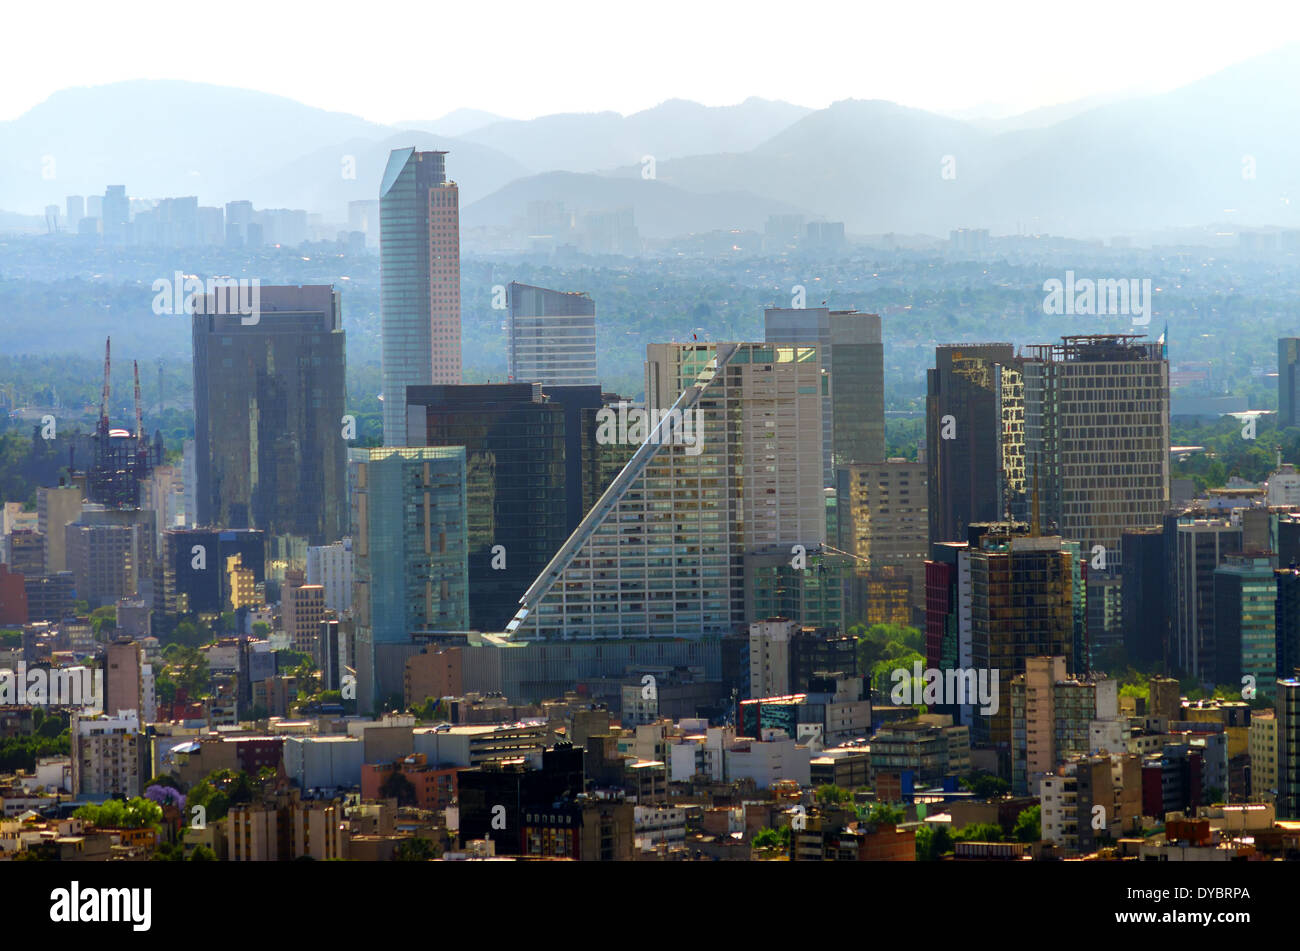 A view of downtown Mexico City, Mexico - Stock Image